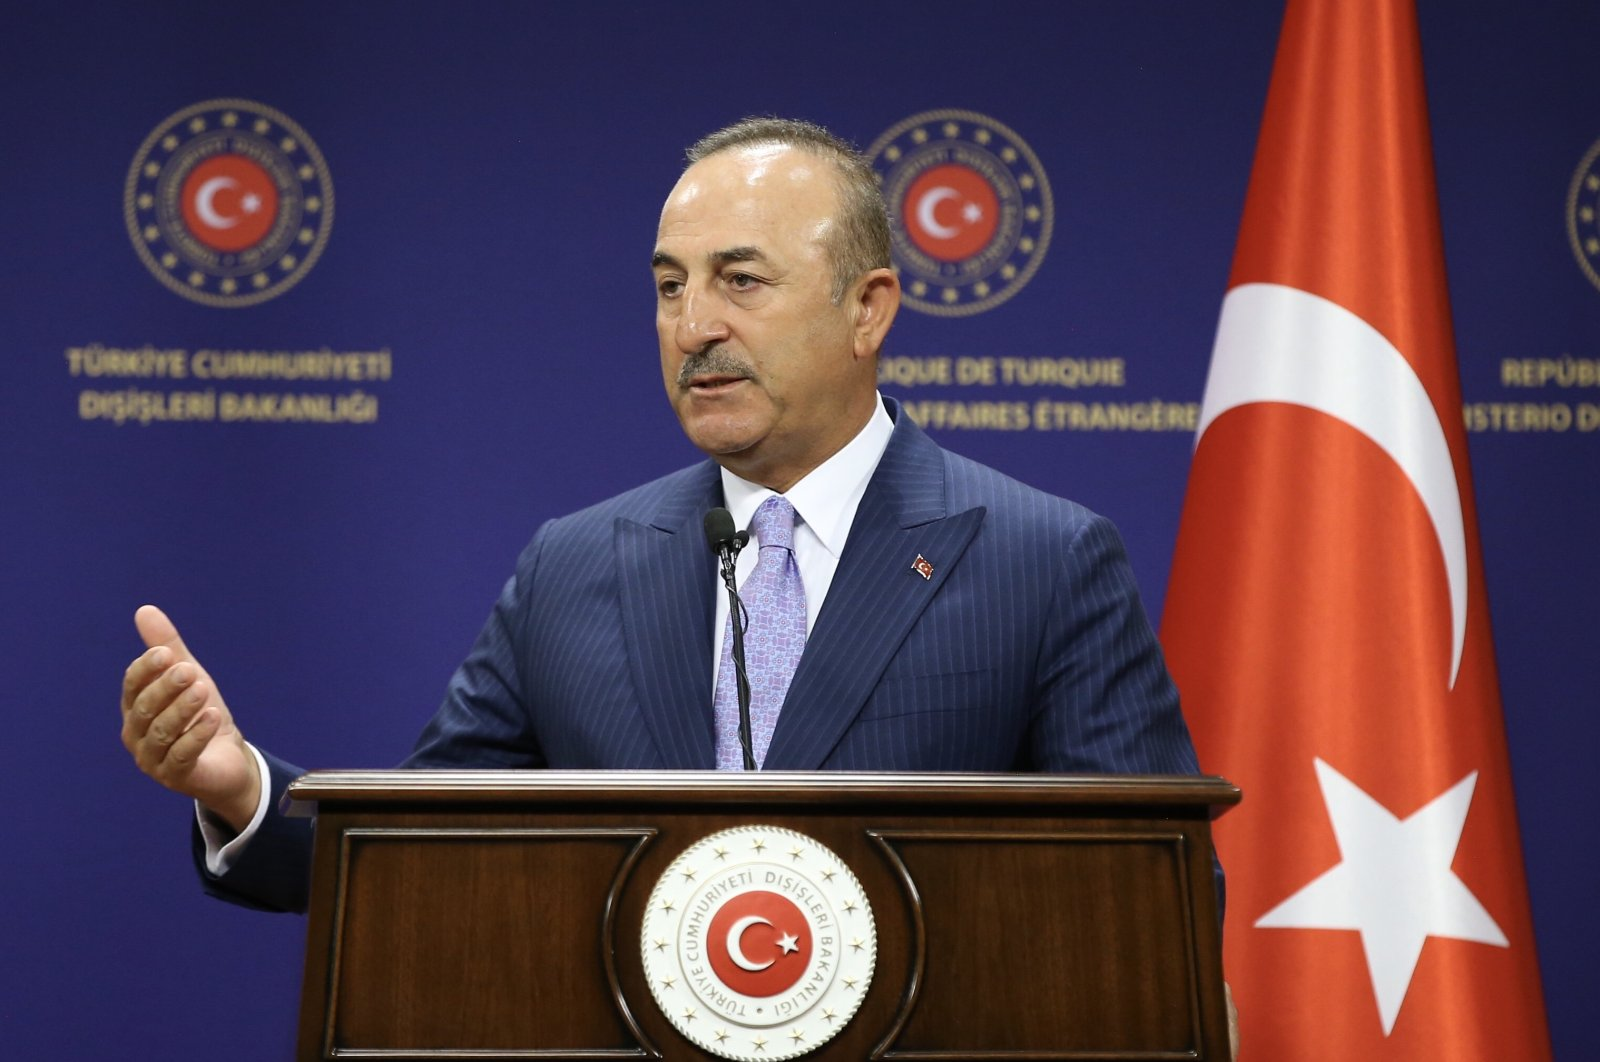 Foreign Minister Mevlüt Çavuşoğlu speaks during a joint press conference with Hungarian Foreign Affairs and Trade Minister Peter Szijjarto in Ankara, July 1, 2020. (AA Photo)